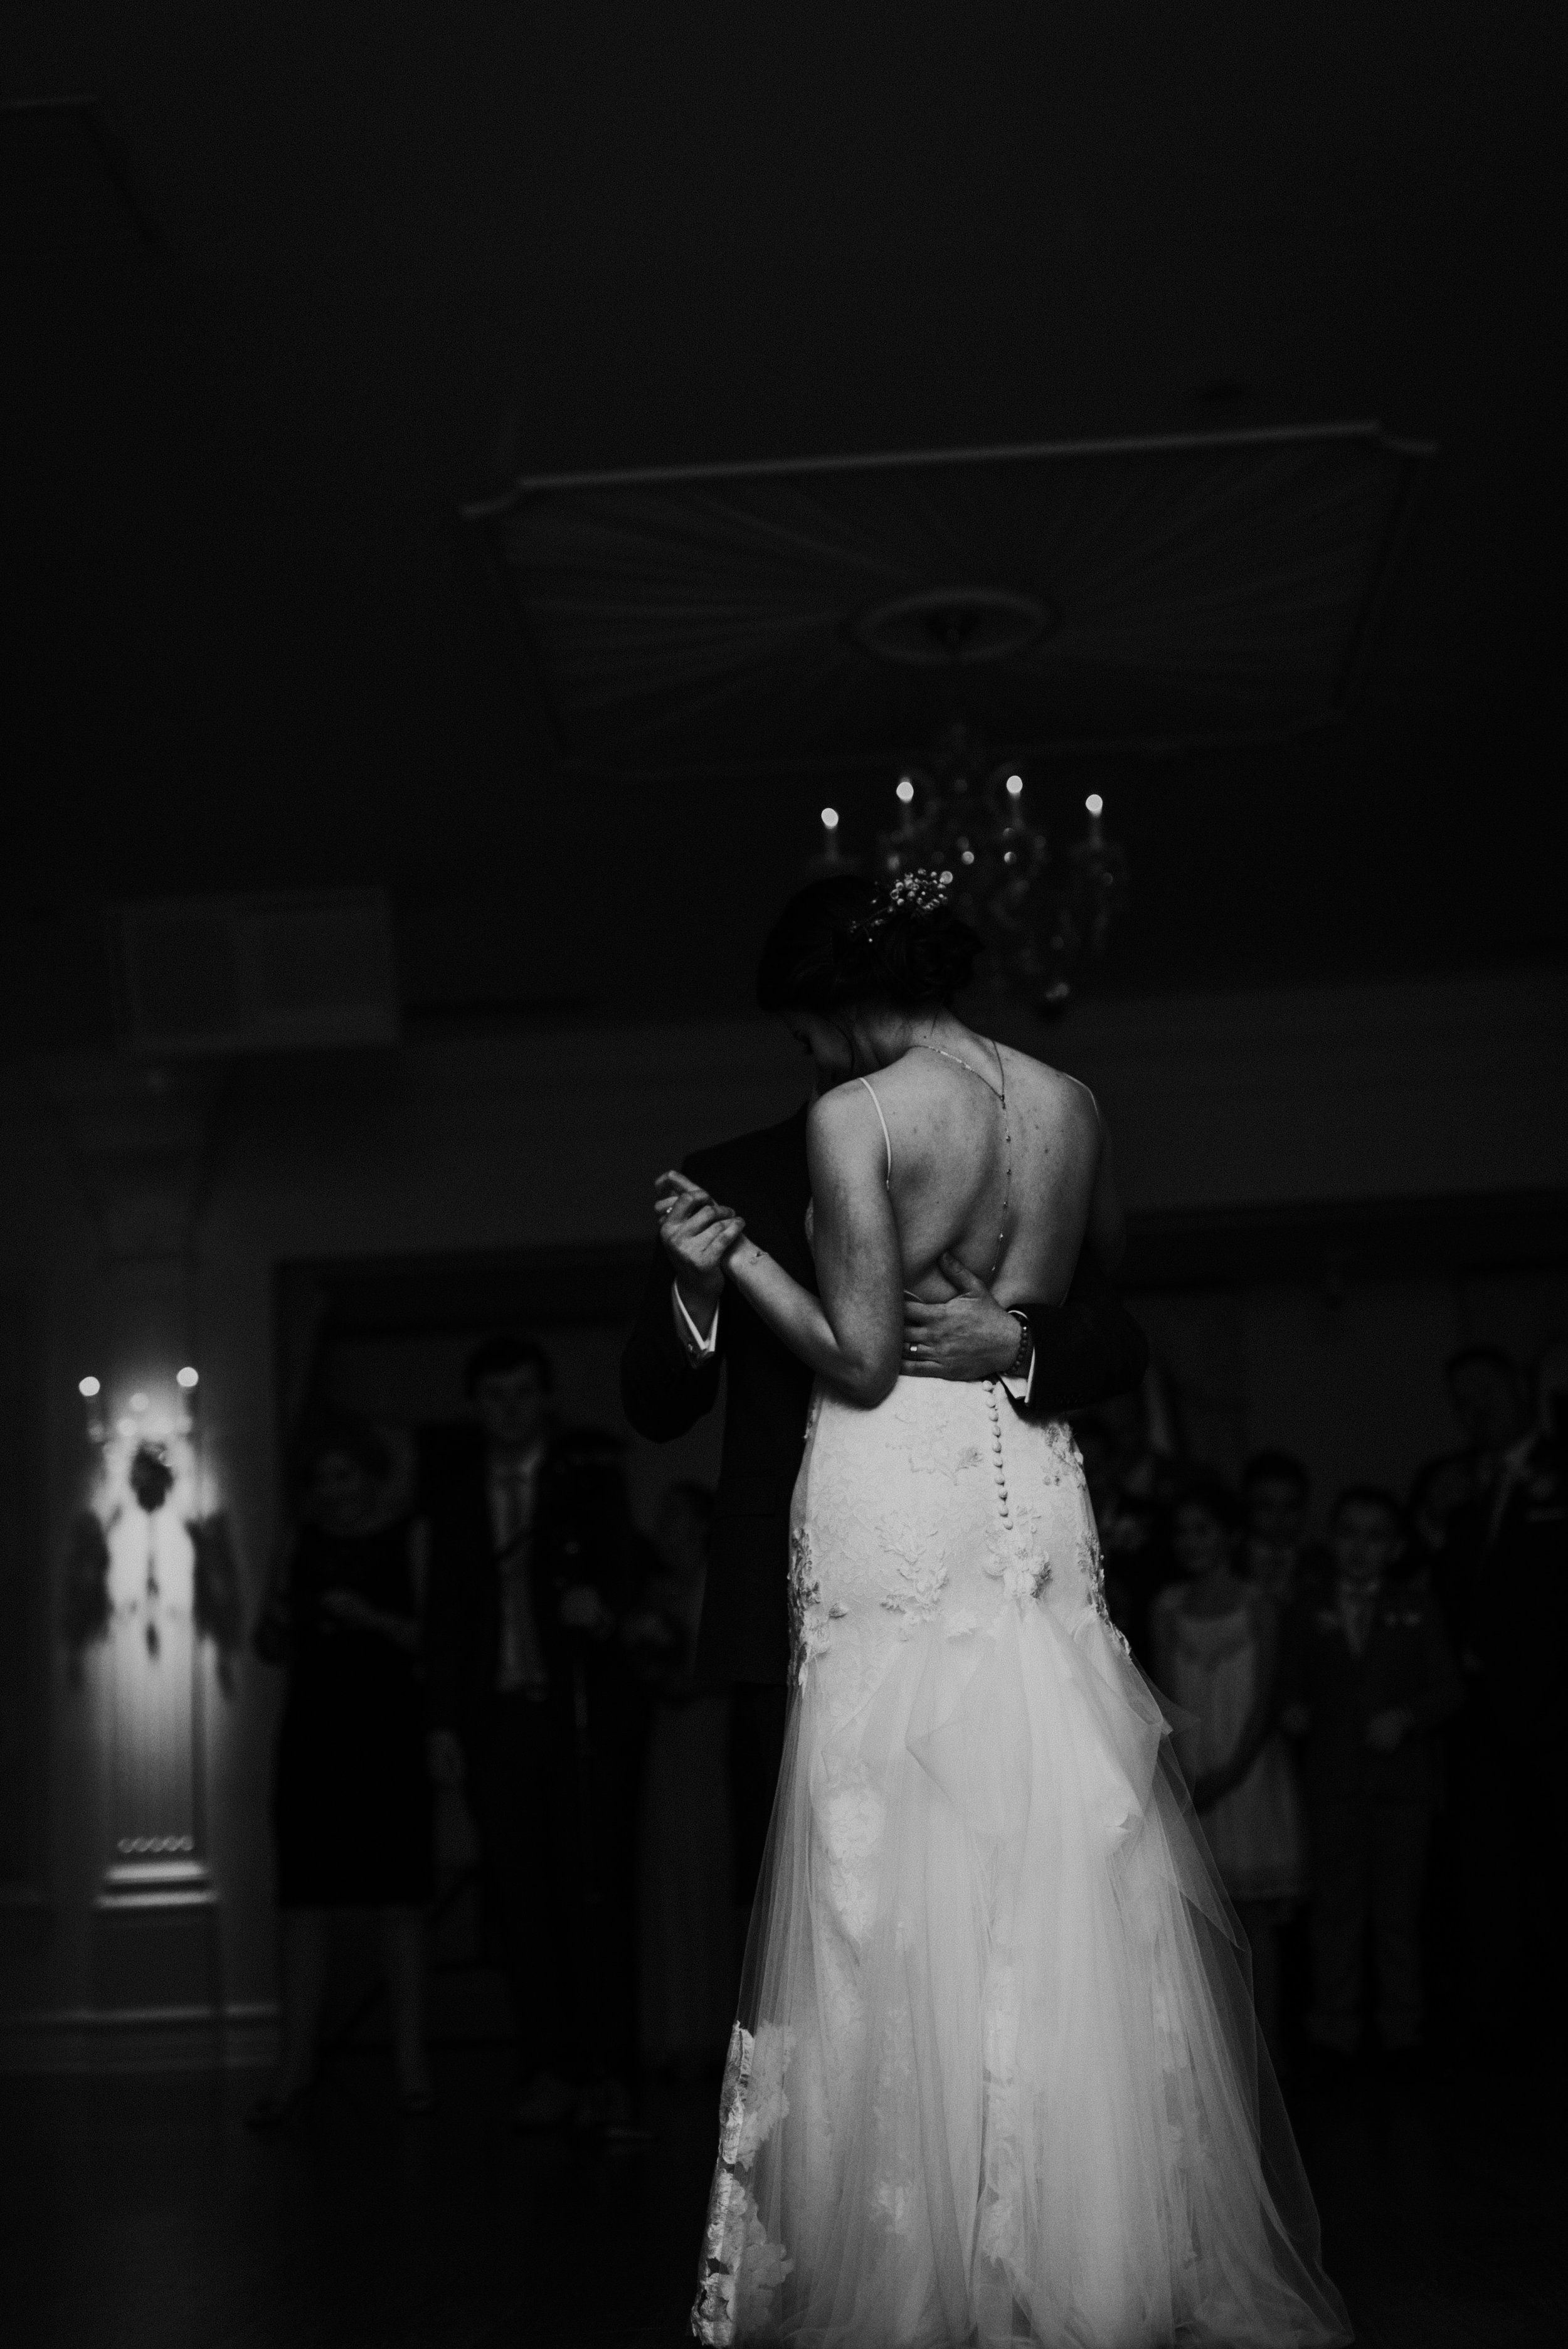 Bloss-Royalton at Roslyn Counttry Club-Planting Fields Arboretum-Long Island-Wedding-Photographer-04118.jpg